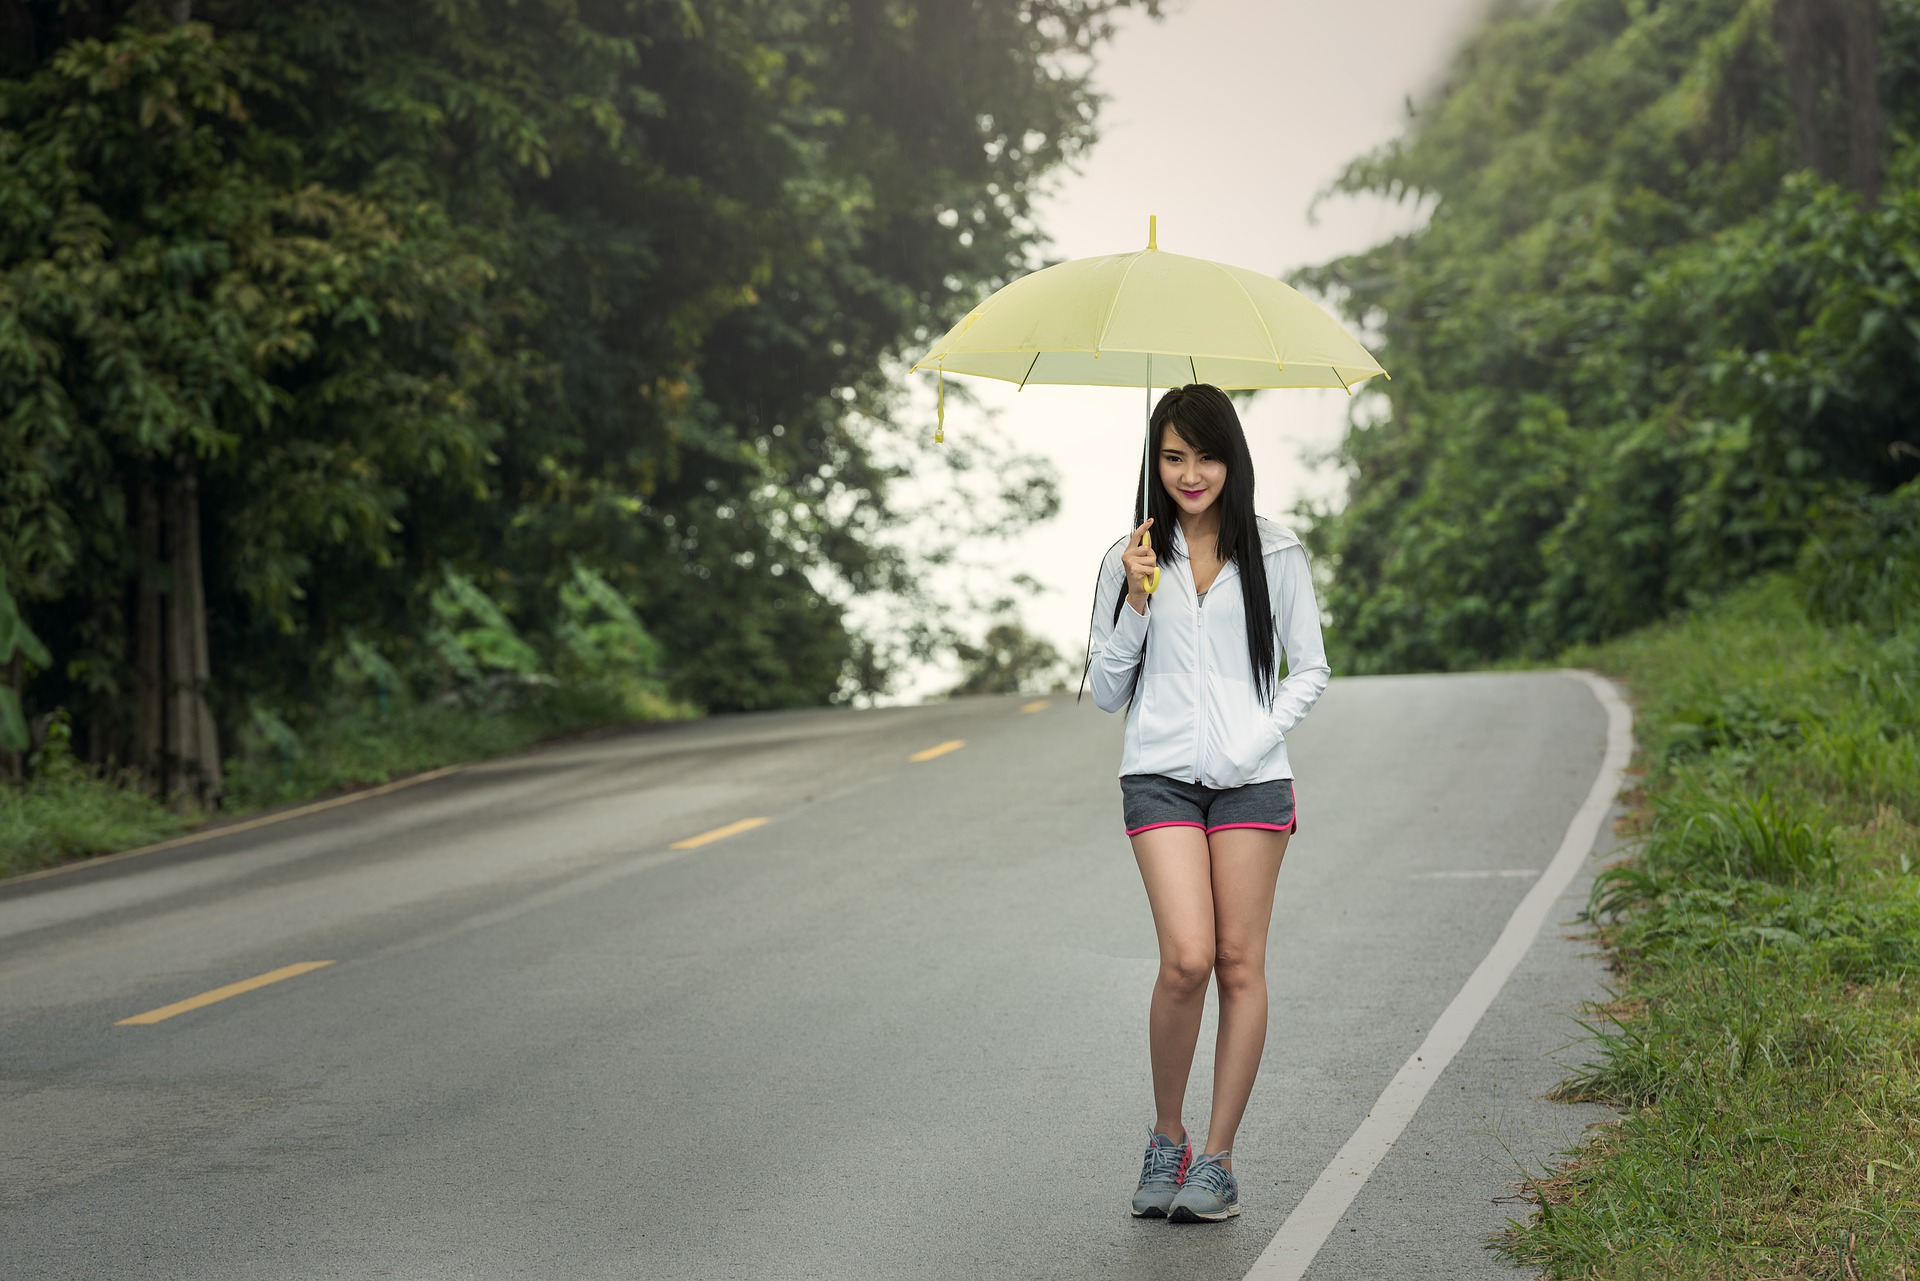 Pictures of naked asian girl with umbrella